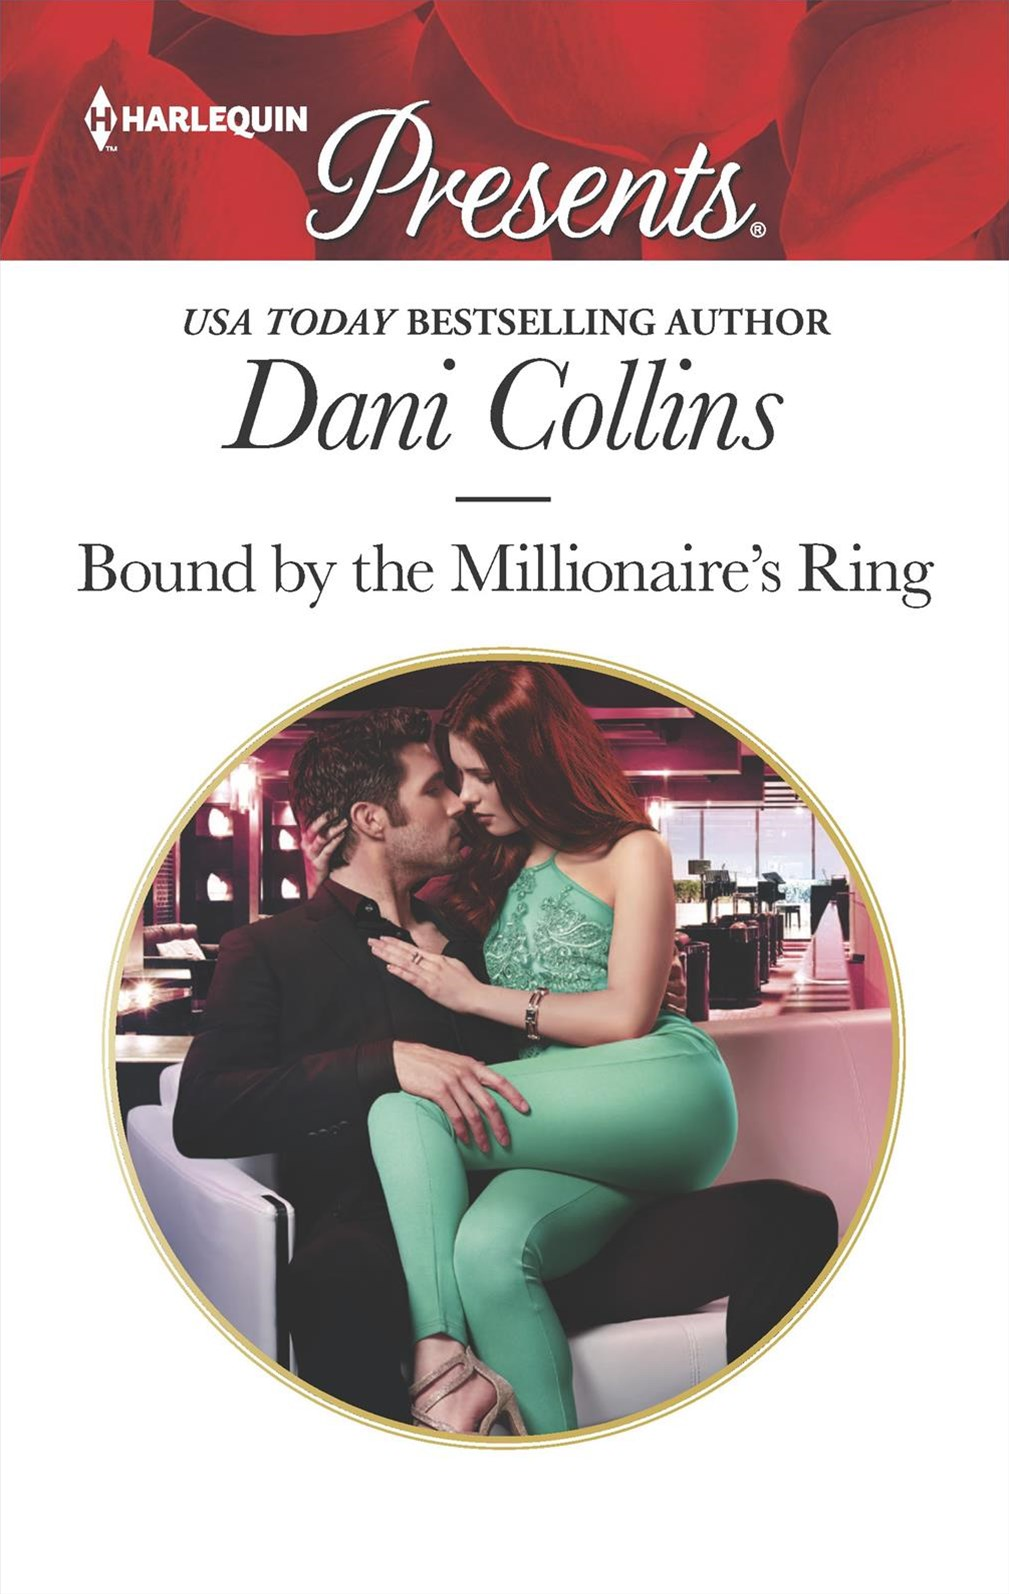 Bound by the Millionaire's Ring